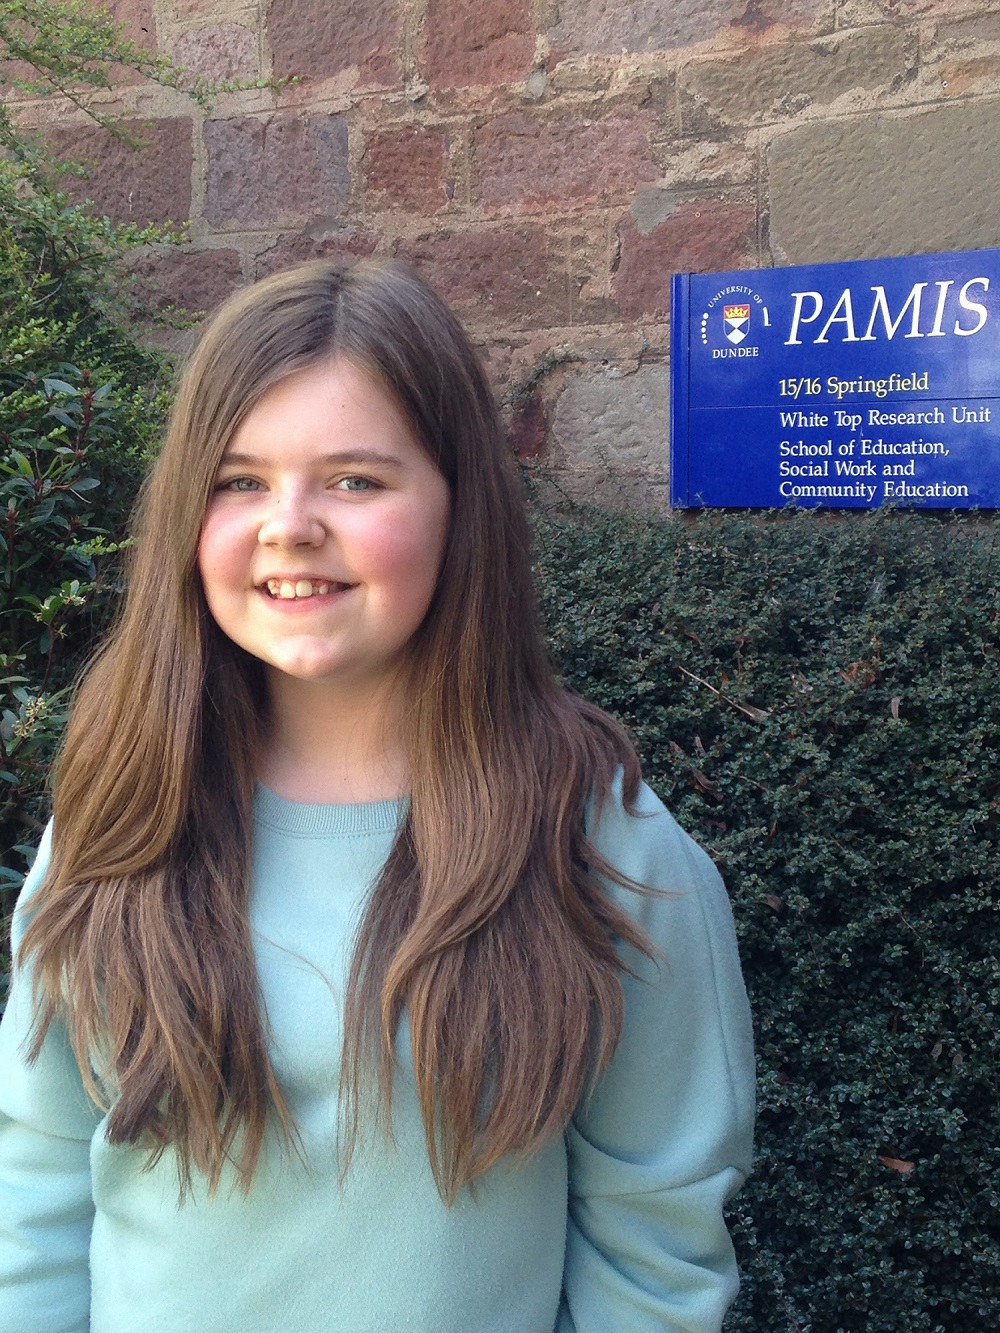 An interview with Heather, a volunteer at PAMIS